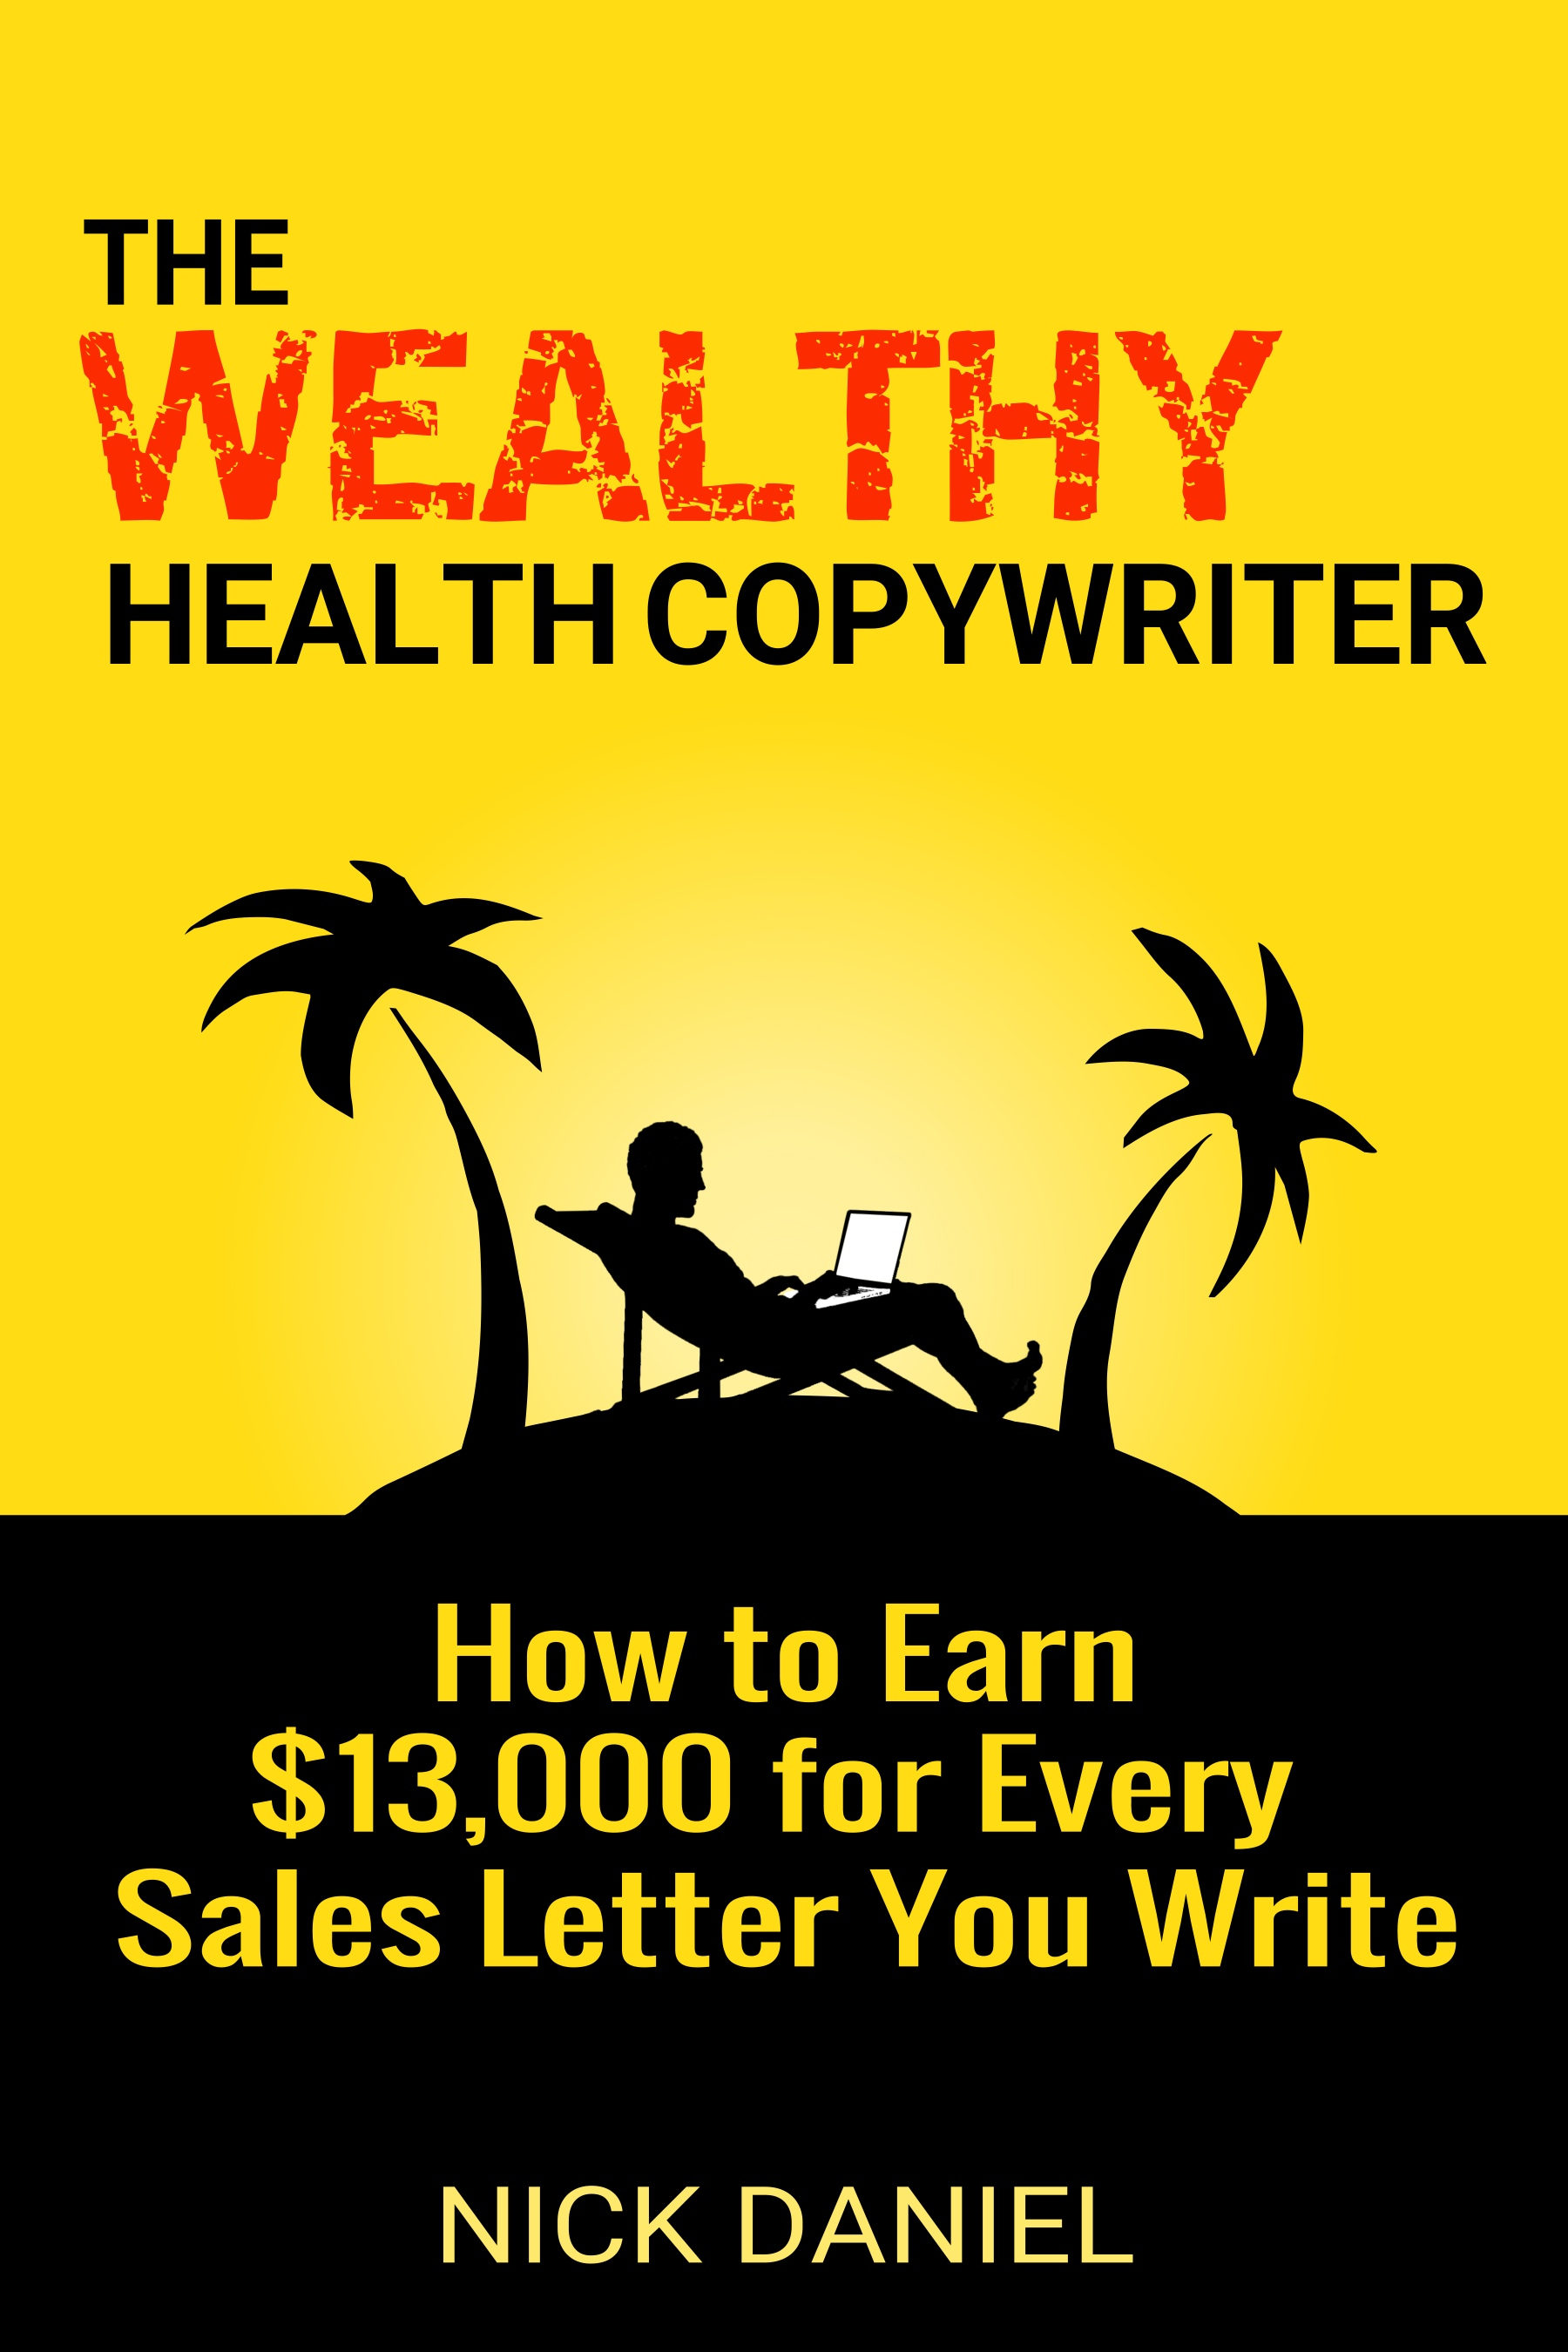 Smashwords – The Wealthy Health Copywriter: How to Earn $13,000 for